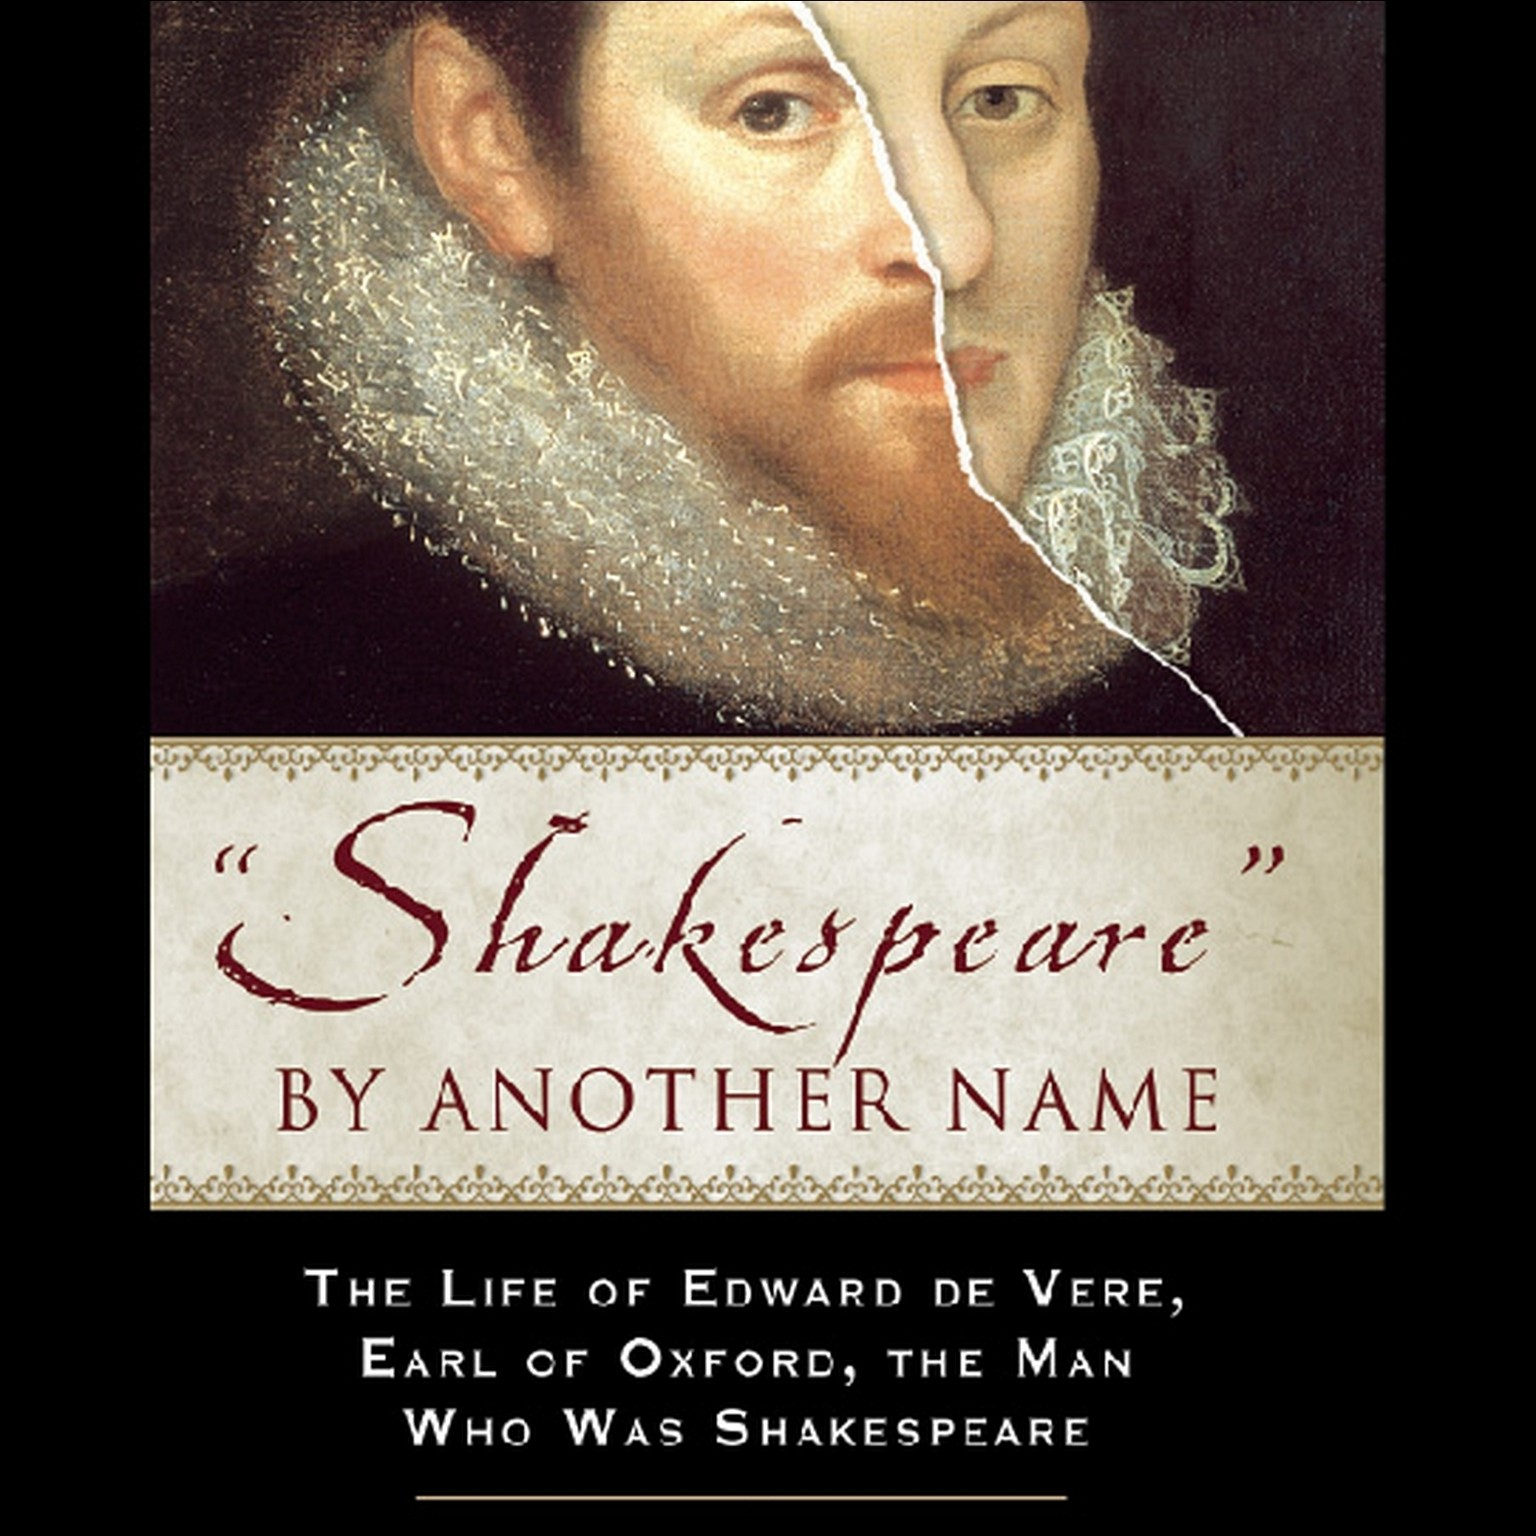 Printable Shakespeare by Another Name: The Life of Edward de Vere, Earl of Oxford, the Man Who Was Shakespeare Audiobook Cover Art